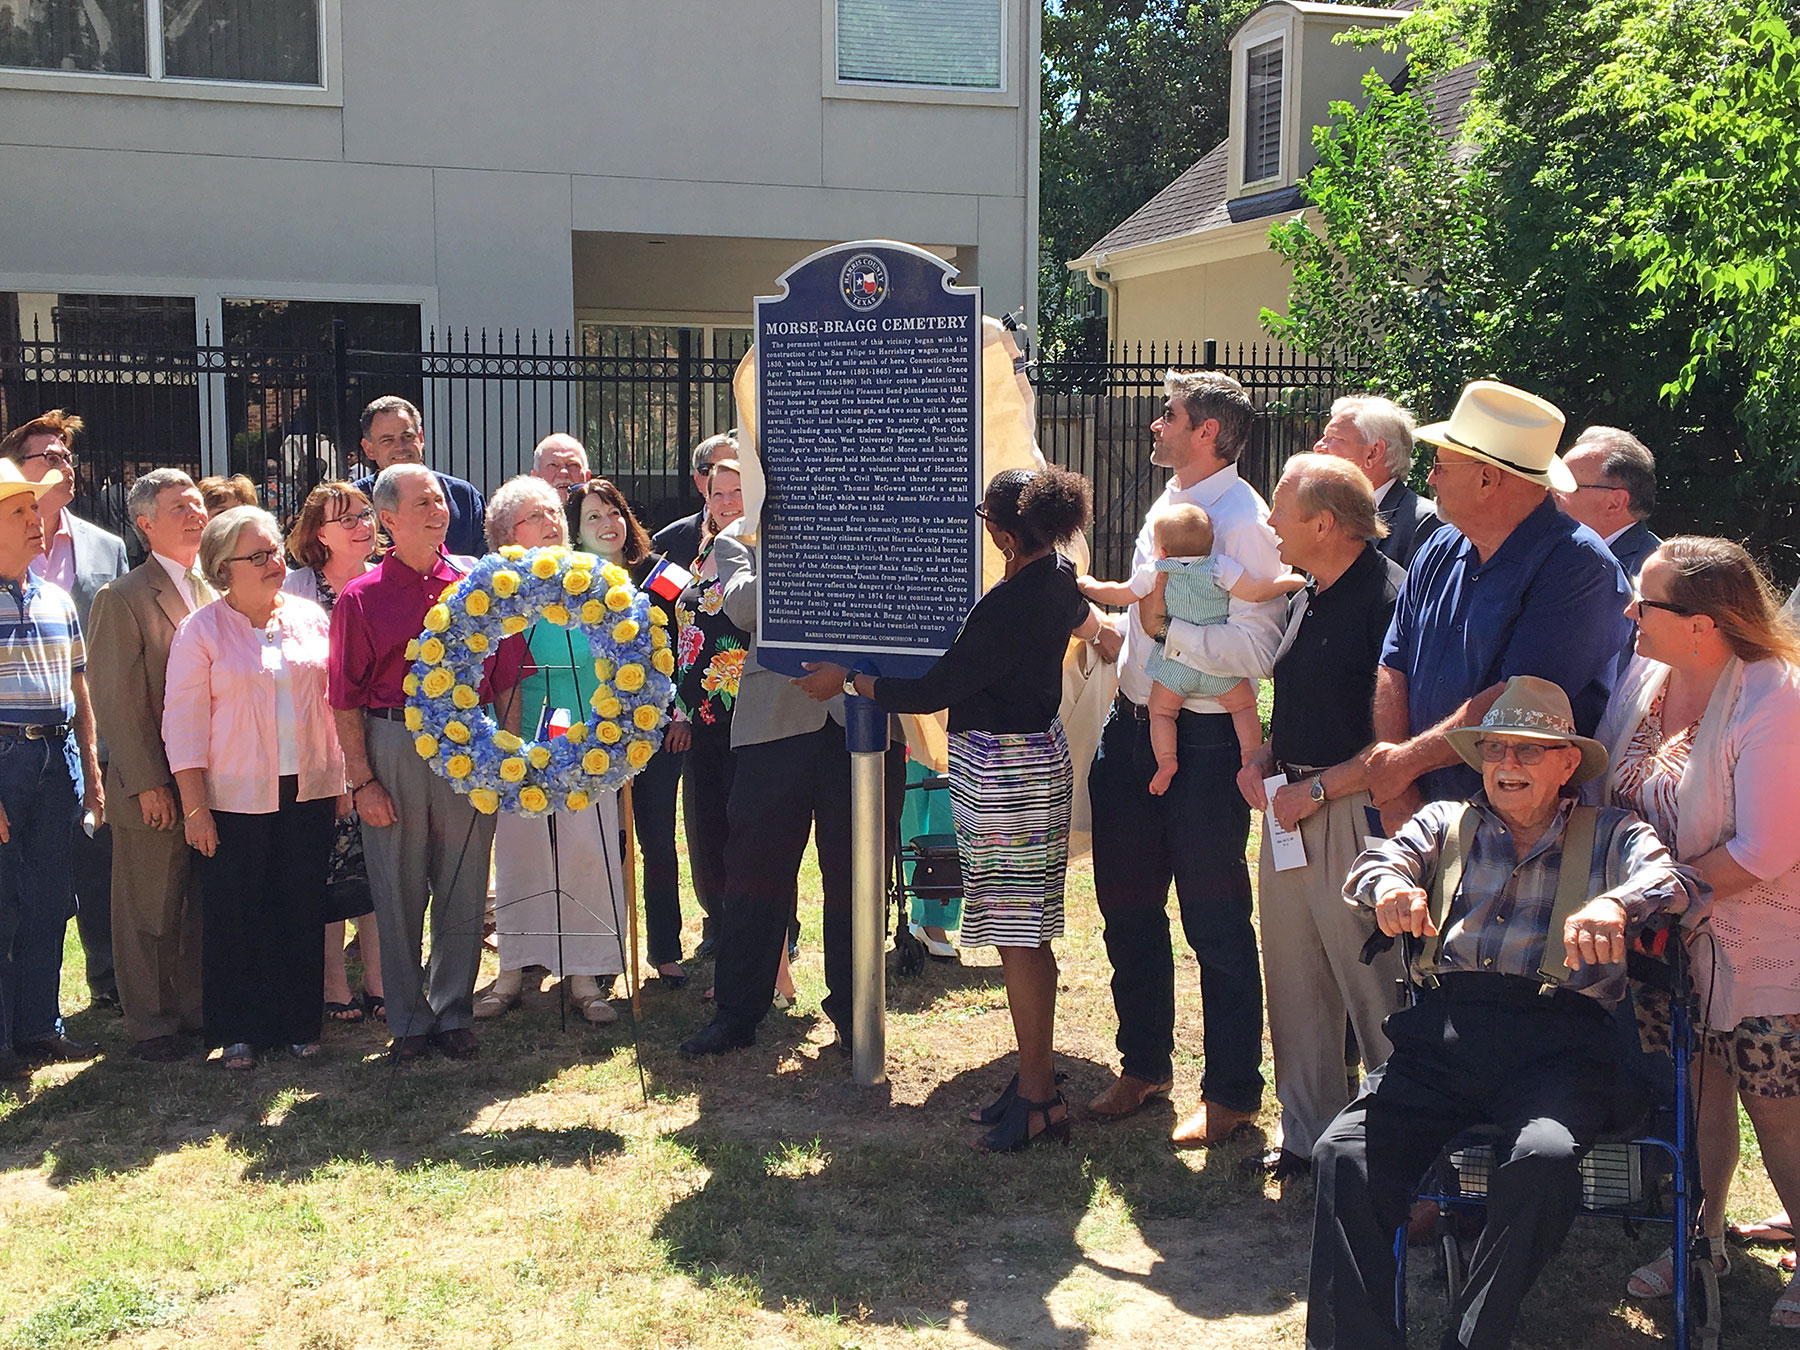 Harris County officials and descendants of the Morse and Bragg families dedicate a Harris County historical marker at the Morse-Bragg Cemetery on May 12 / photo by David Bush